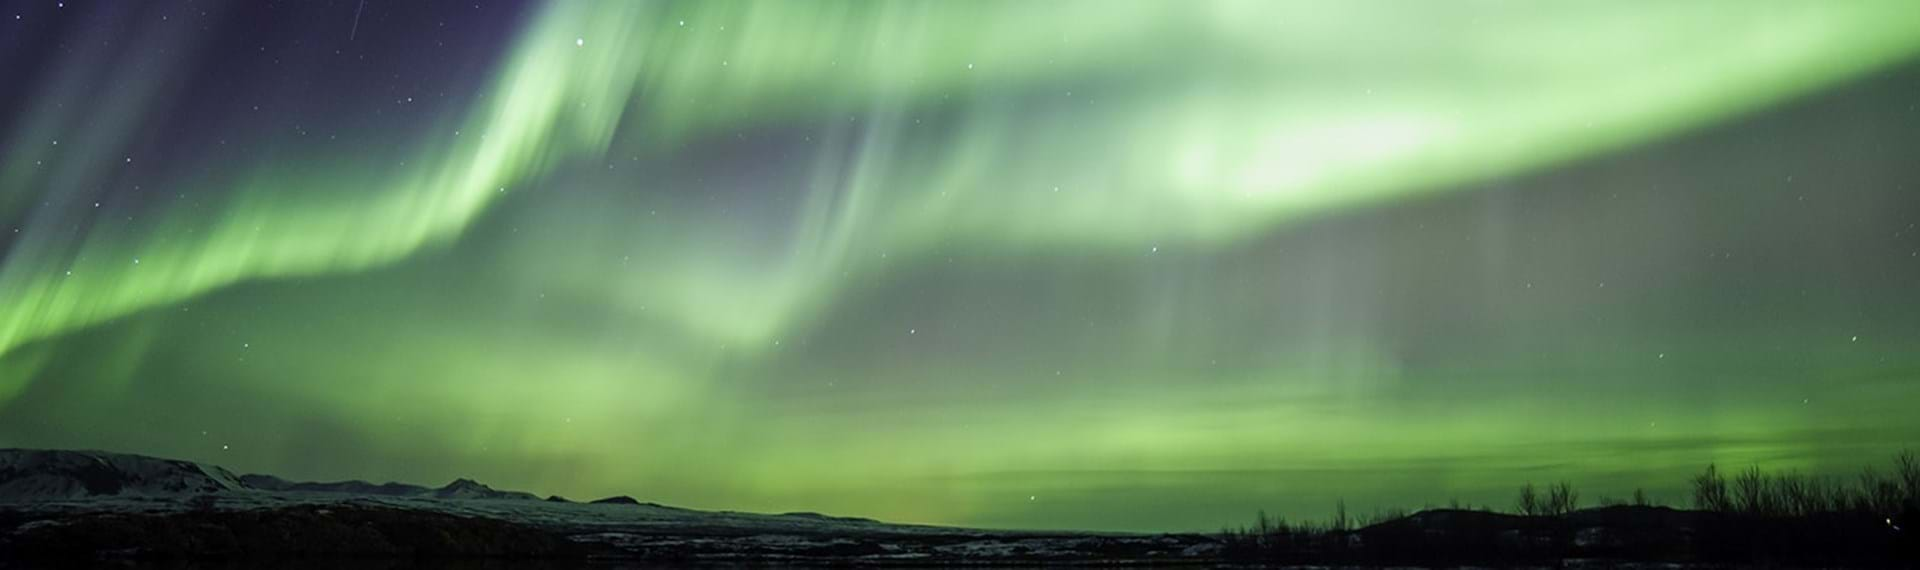 Experience-the-northern-lights-in-Iceland